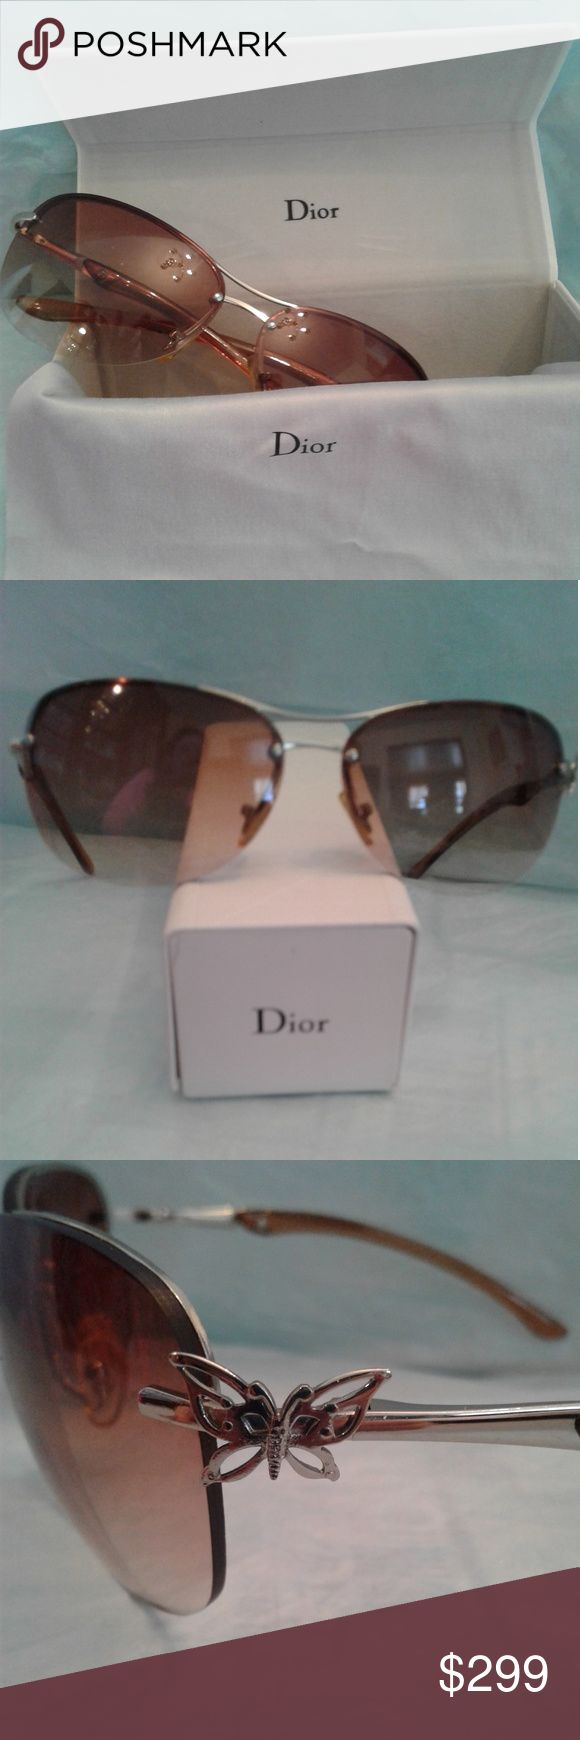 Christian Dior Vintage Sunglasses   EUC  Christian Dior Vintage Sunglasses   Classy Amber gradient lenses, butterfly  at the left temple, Dior in the left lens and Christian Dior on the right frame arm.   Although EUC, please keep in mind these are vintage sunglasses and review all pictures carefully and ask any questions.   Case (not original but Dior) and Dior cleaning cloth included Christian Dior Accessories Sunglasses